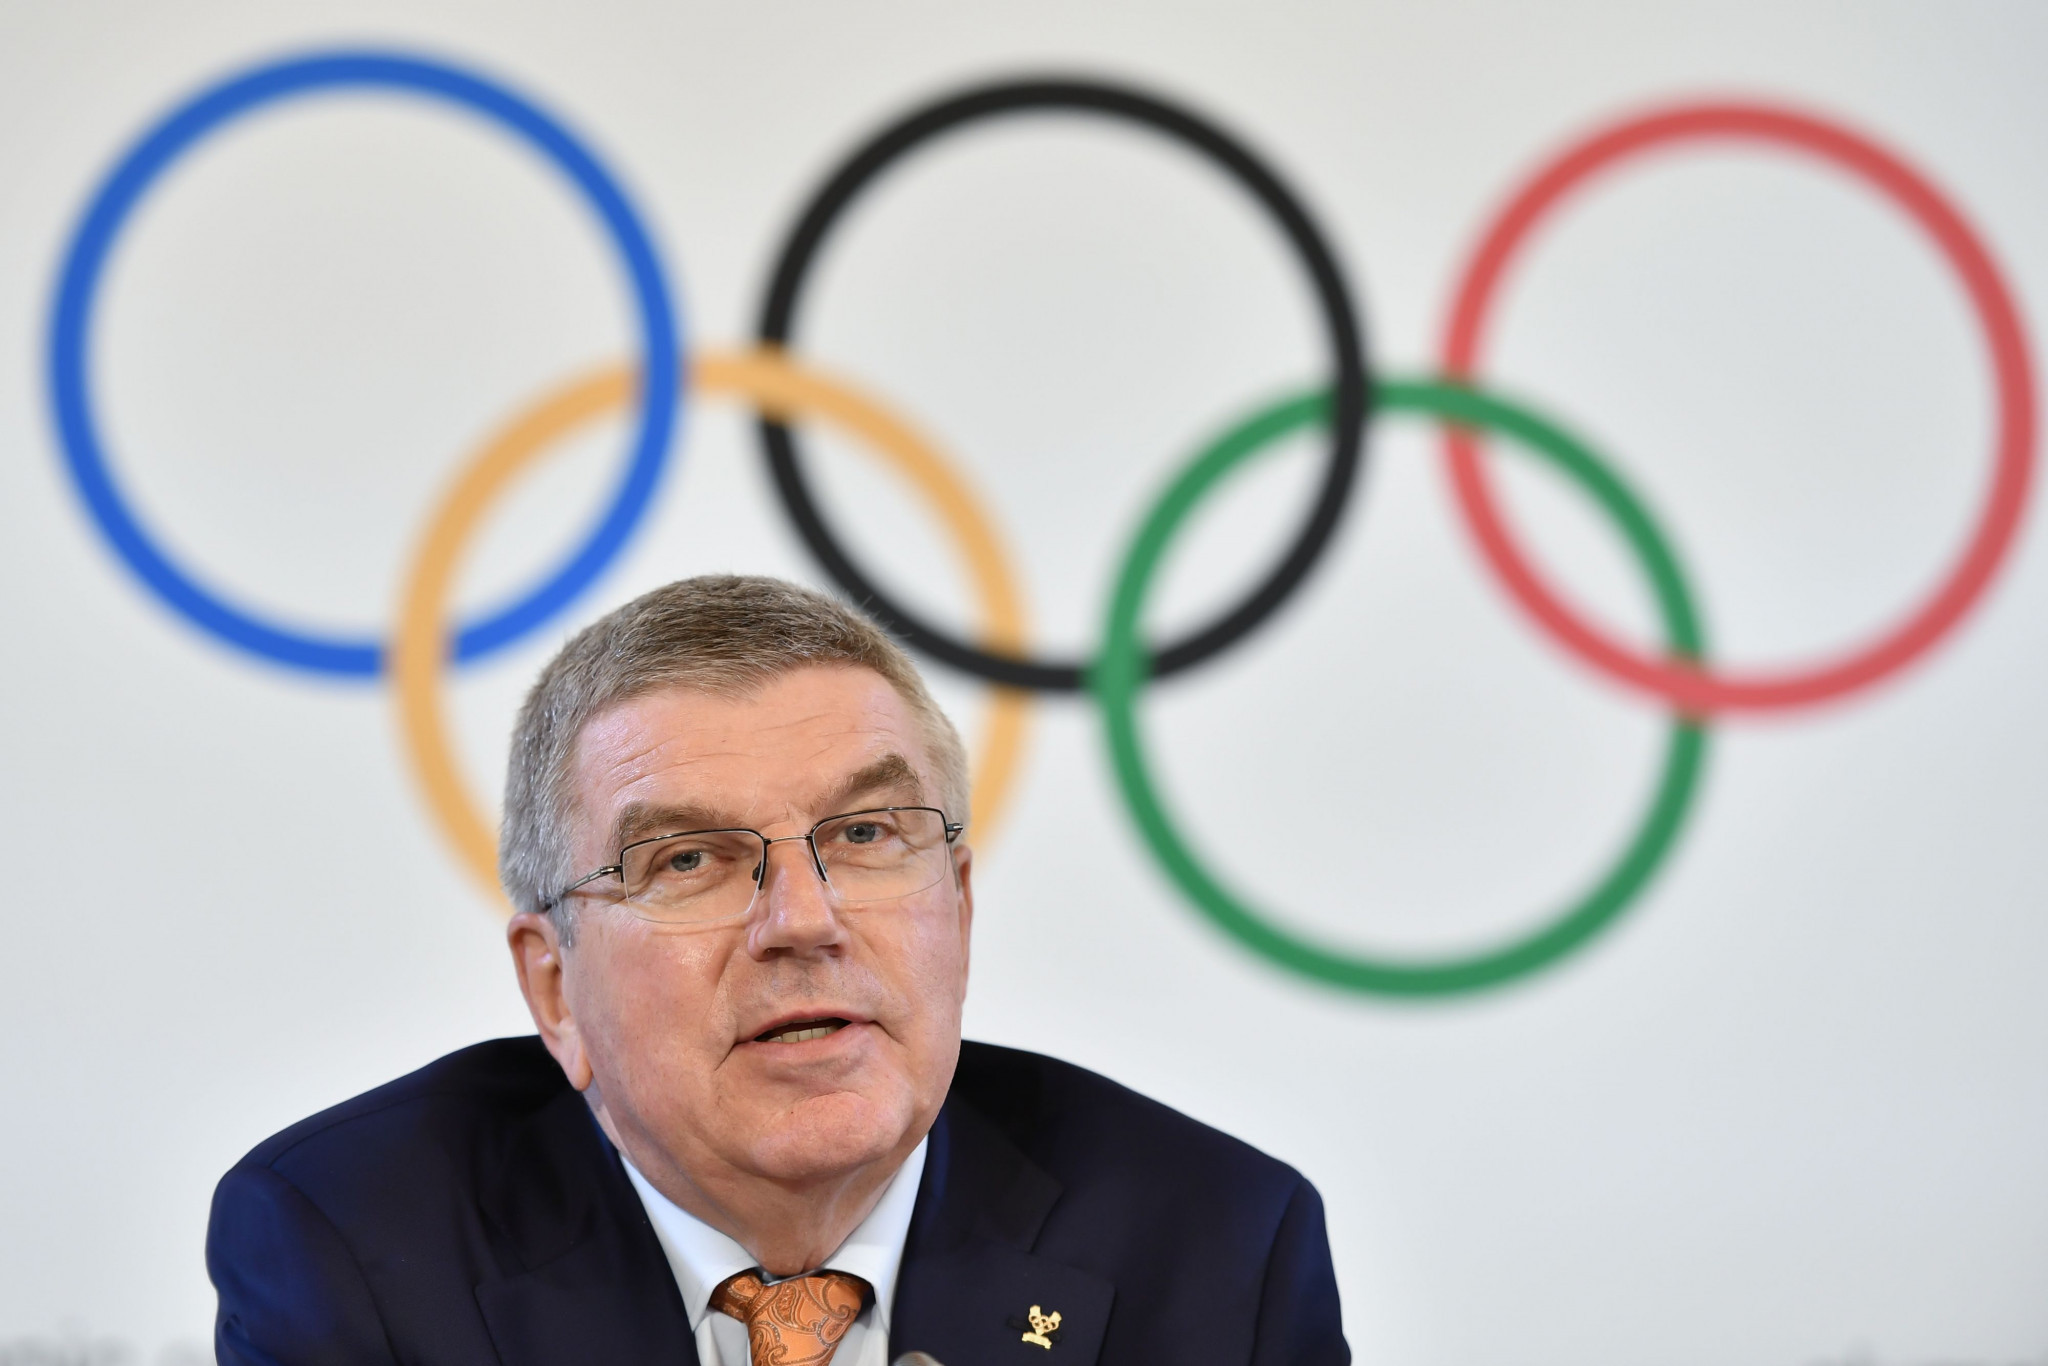 Bach to attend G20 summit in Osaka but will not hold meetings with world leaders